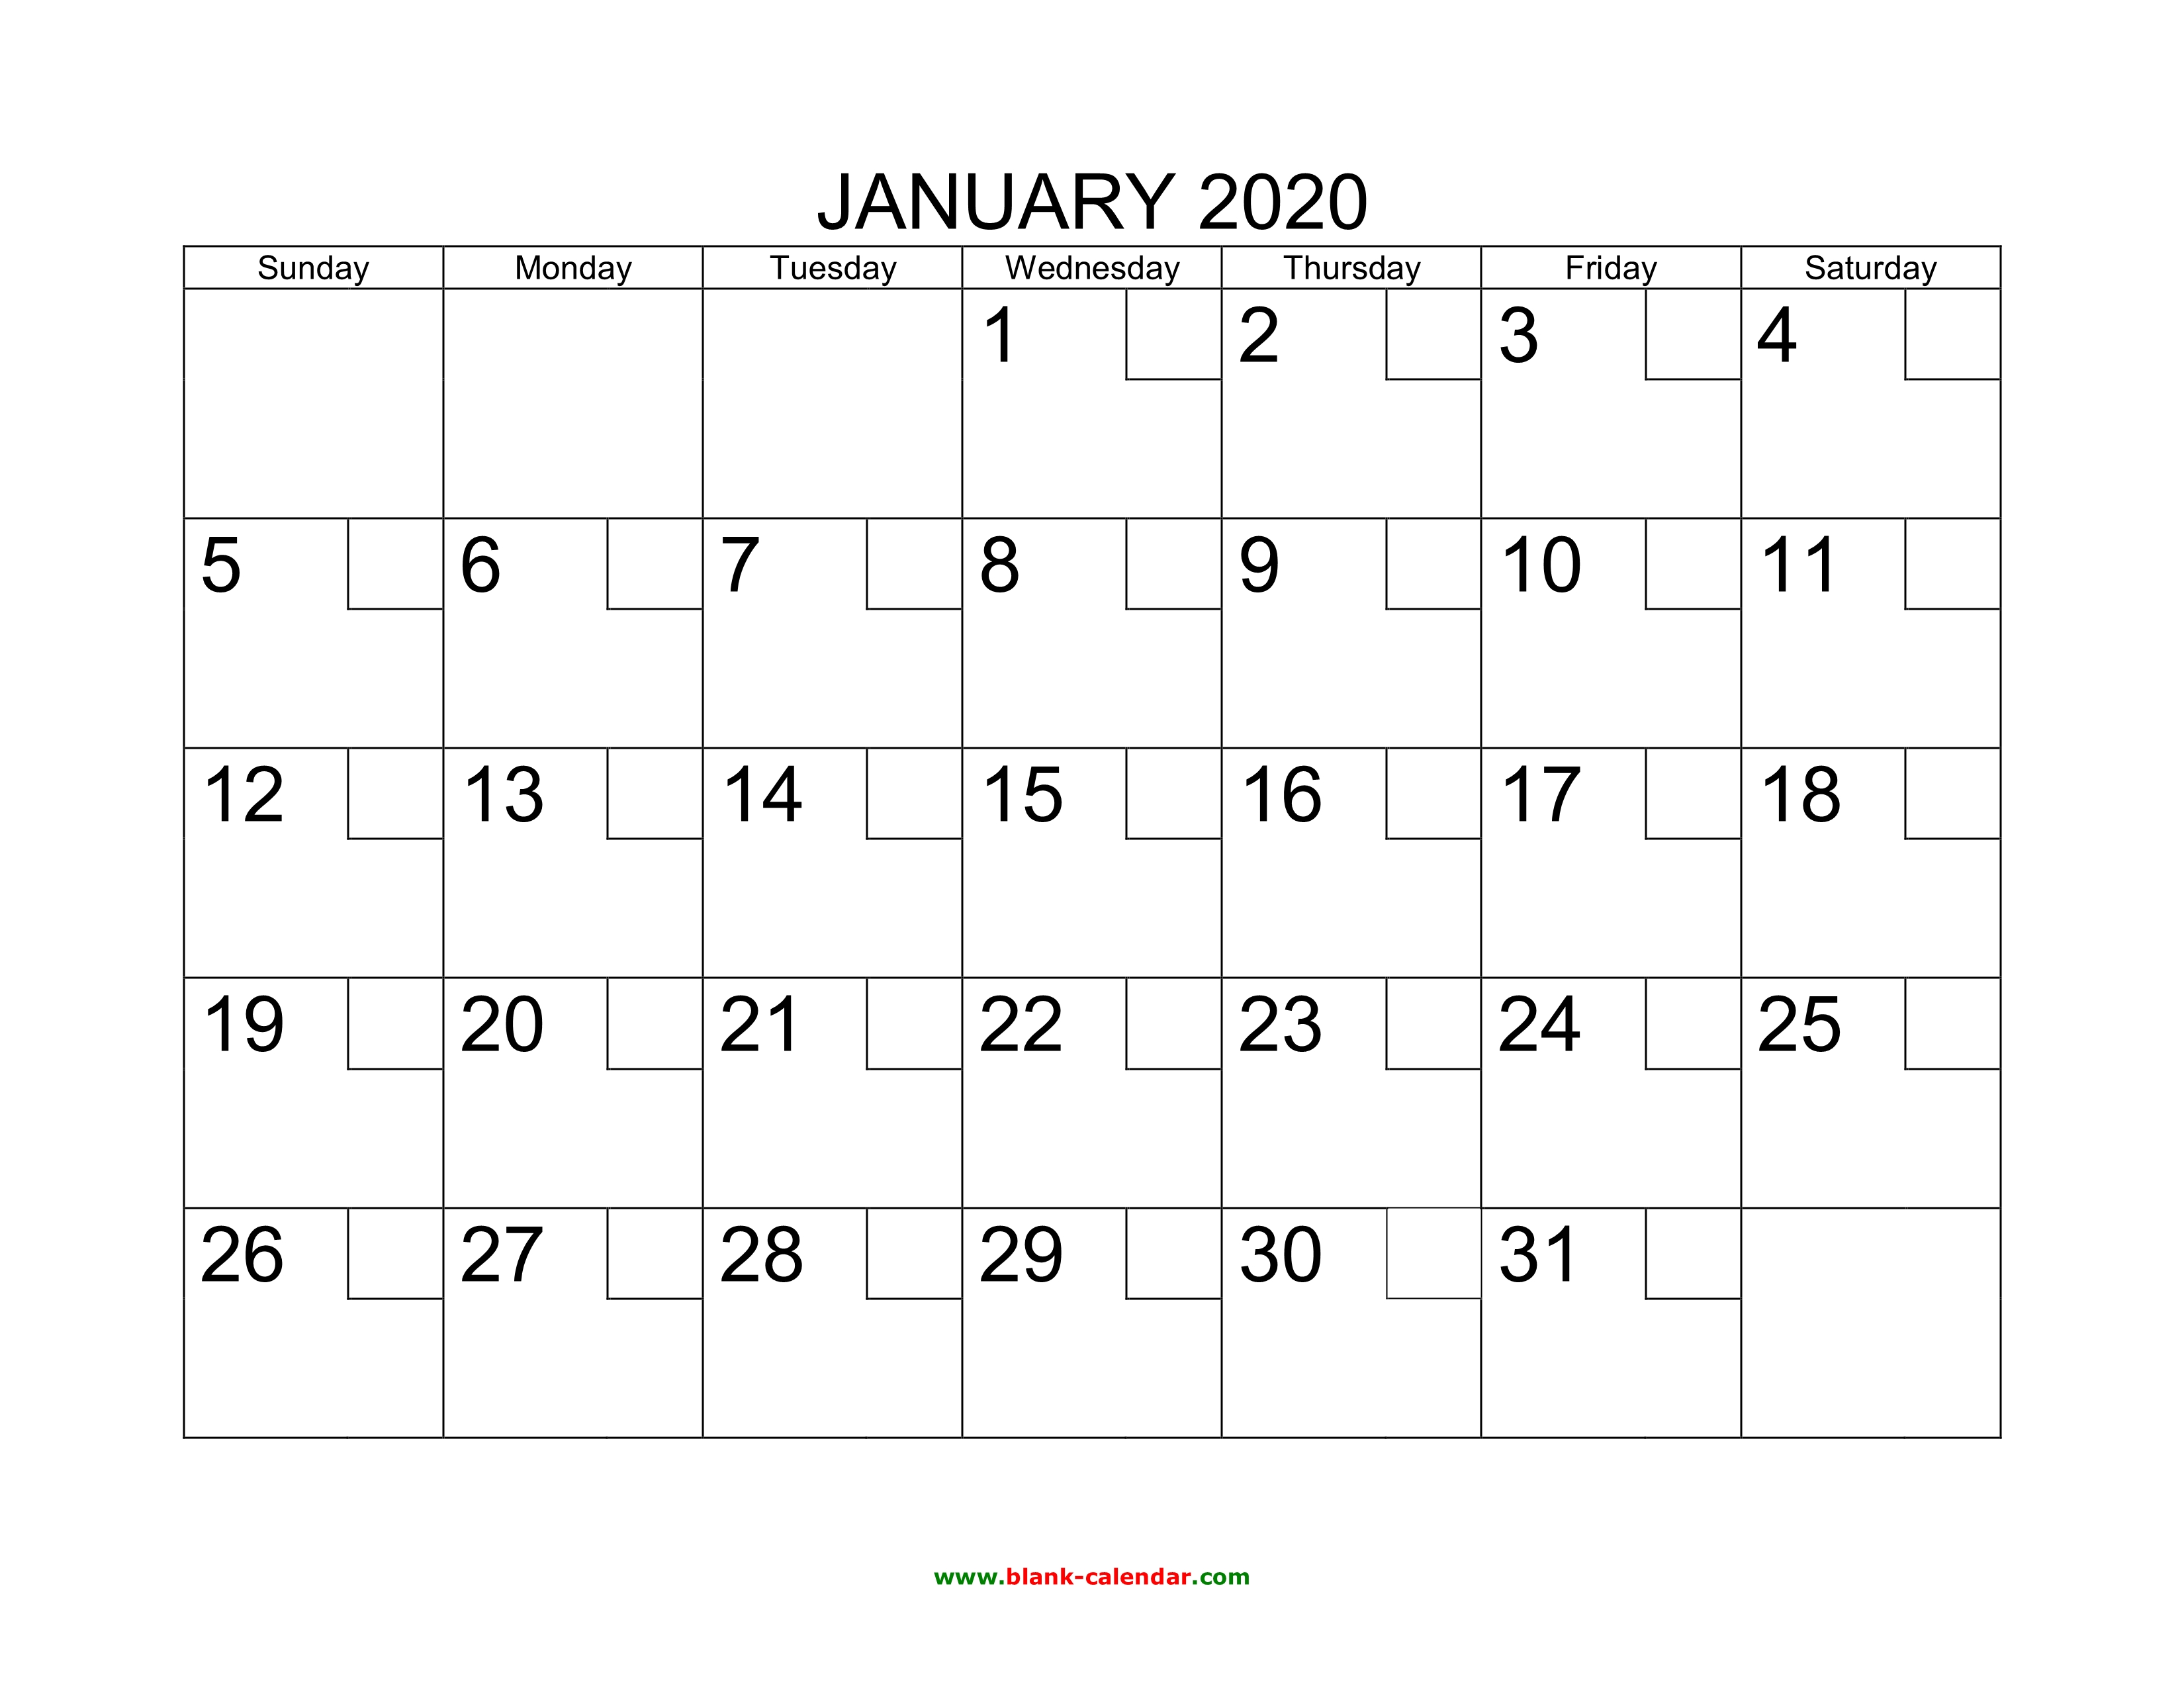 Download Calendar January 2020 Free Download Printable January 2020 Calendar with check boxes